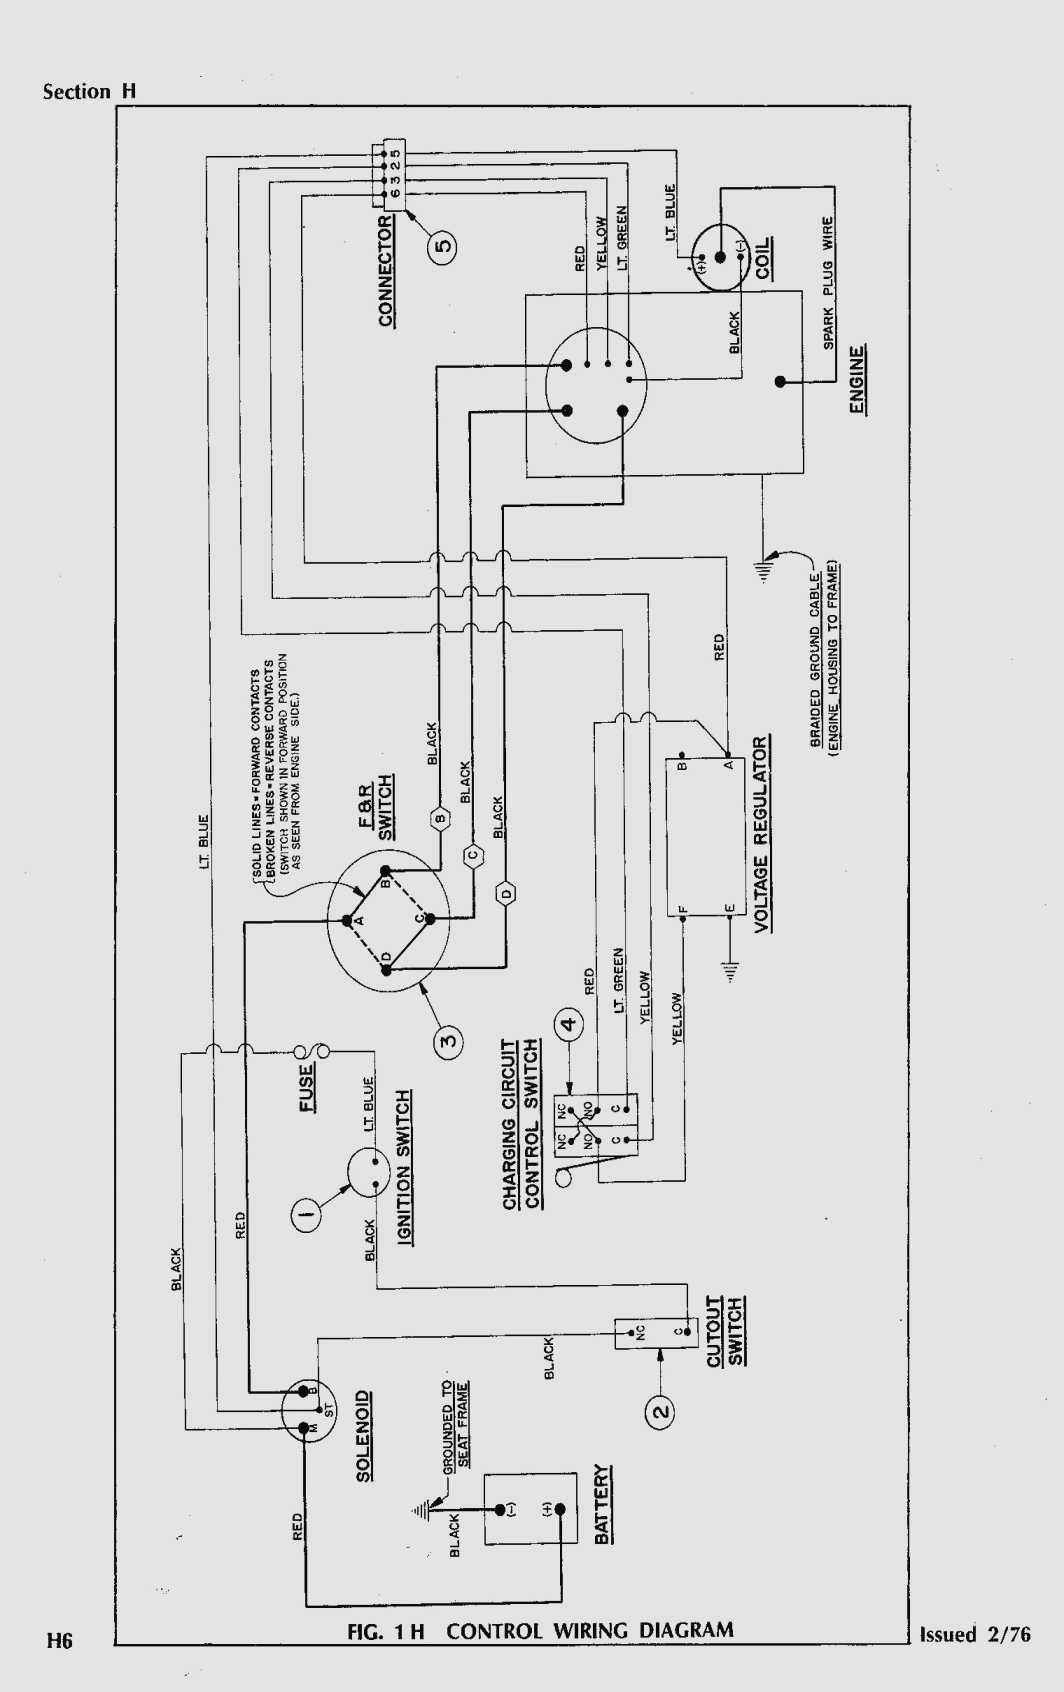 Ezgo Wiring Diagram Golf Cart Ezgo Golf Cart Club Car Golf Cart Gas Golf Carts